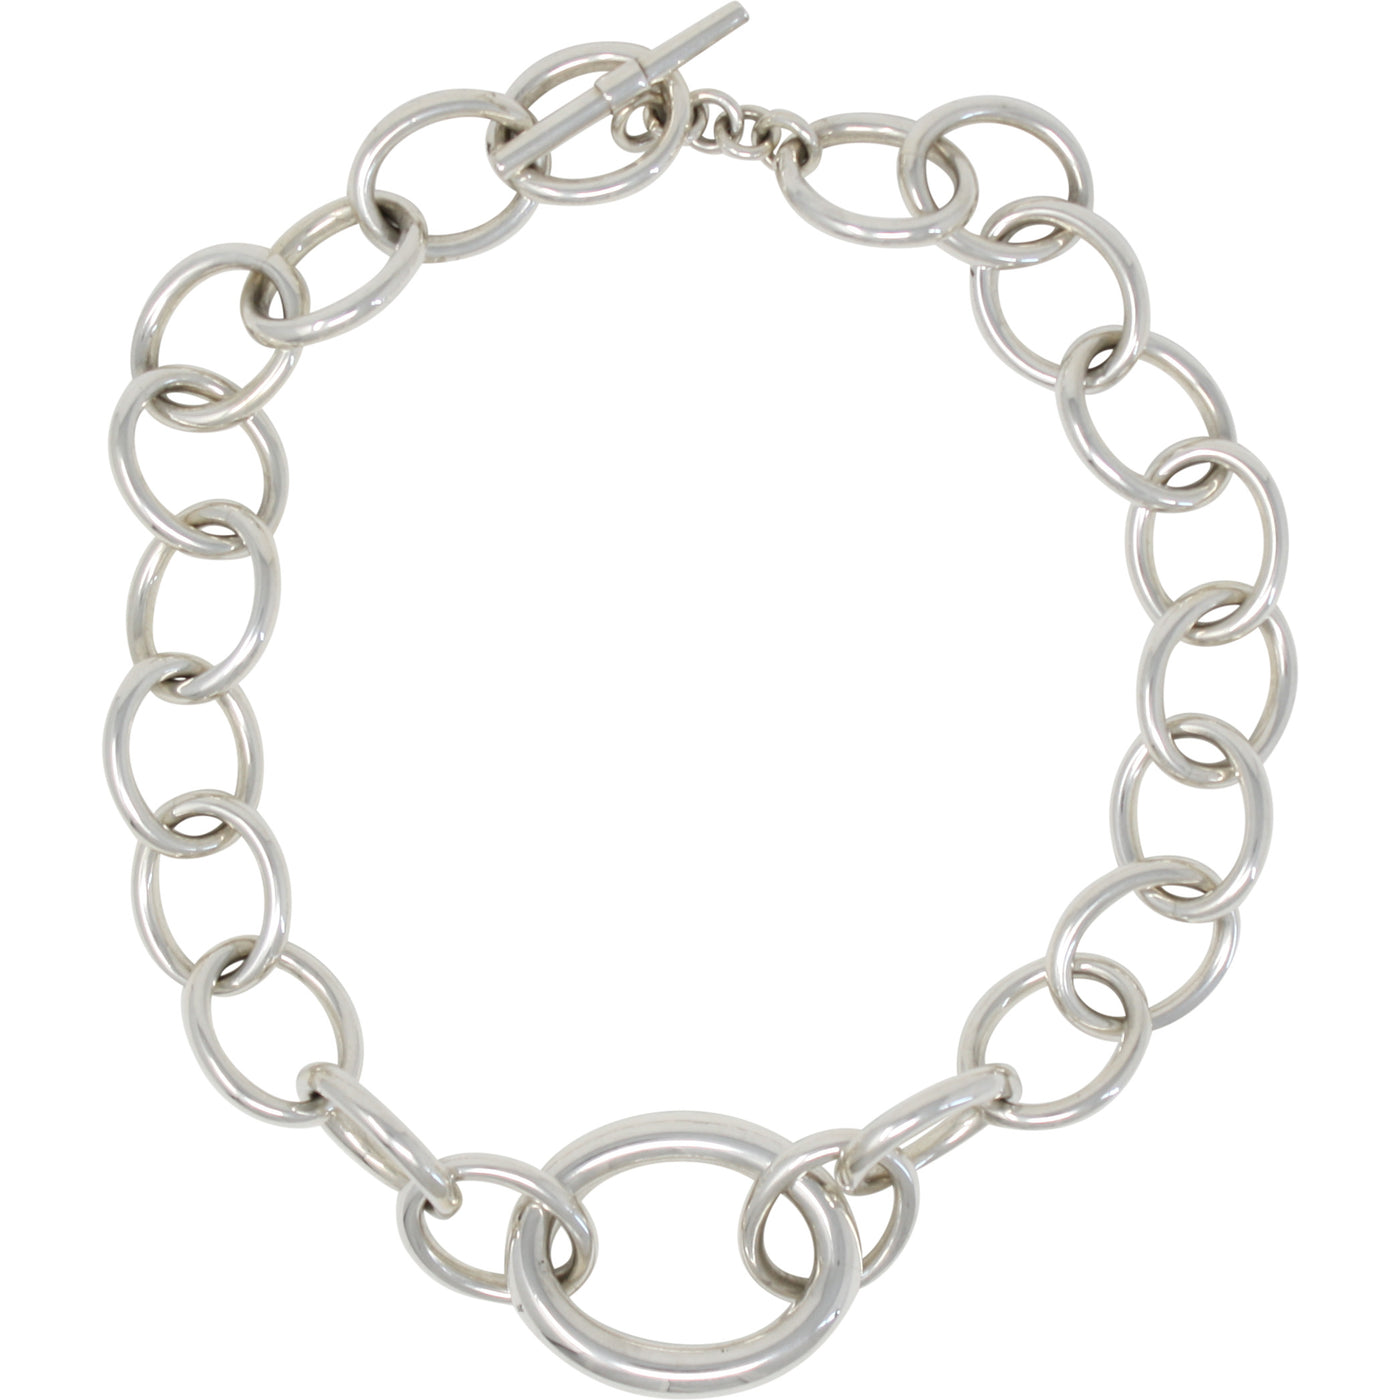 FM 800013 64 OVAL LINK NECKLACE